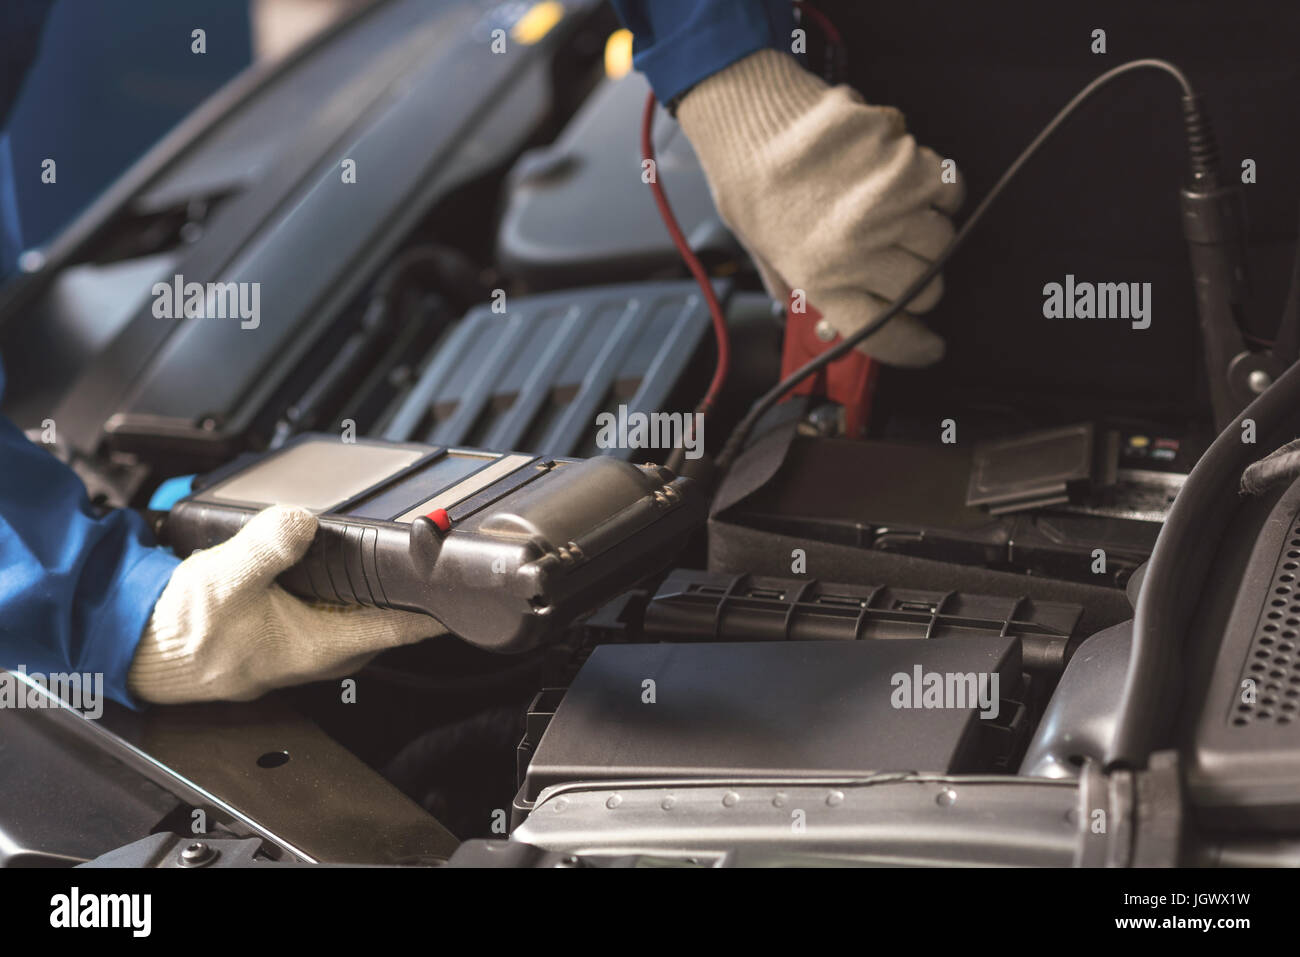 Plug in wires. Talented skillful trained serviceman employing special indicator for measuring something while conducting - Stock Image